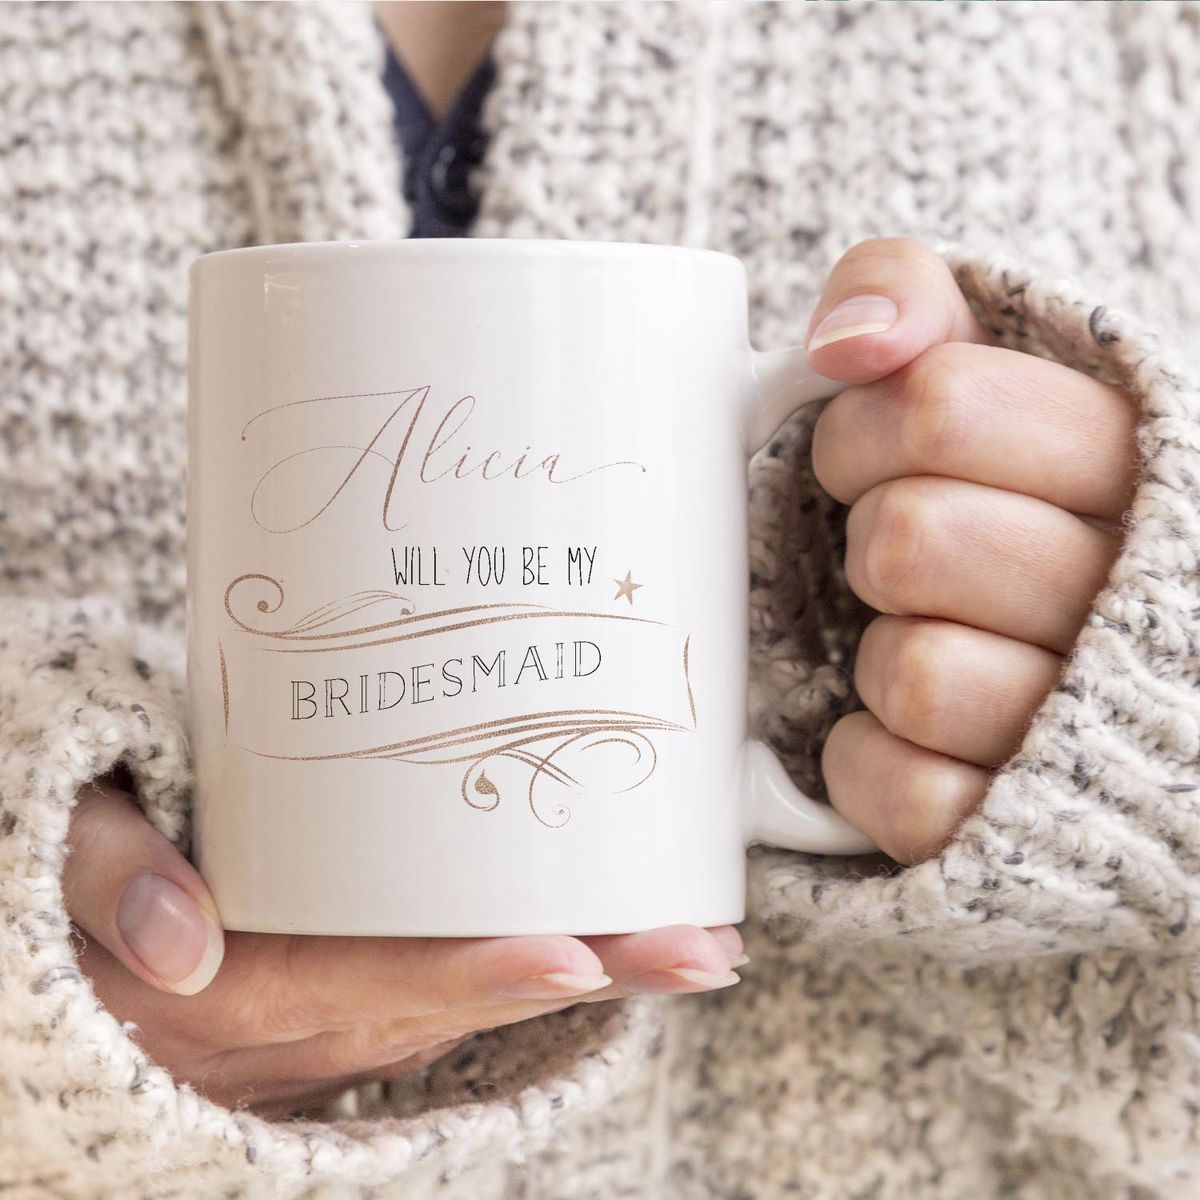 Be my Bridesmaid customised mug - product images  of